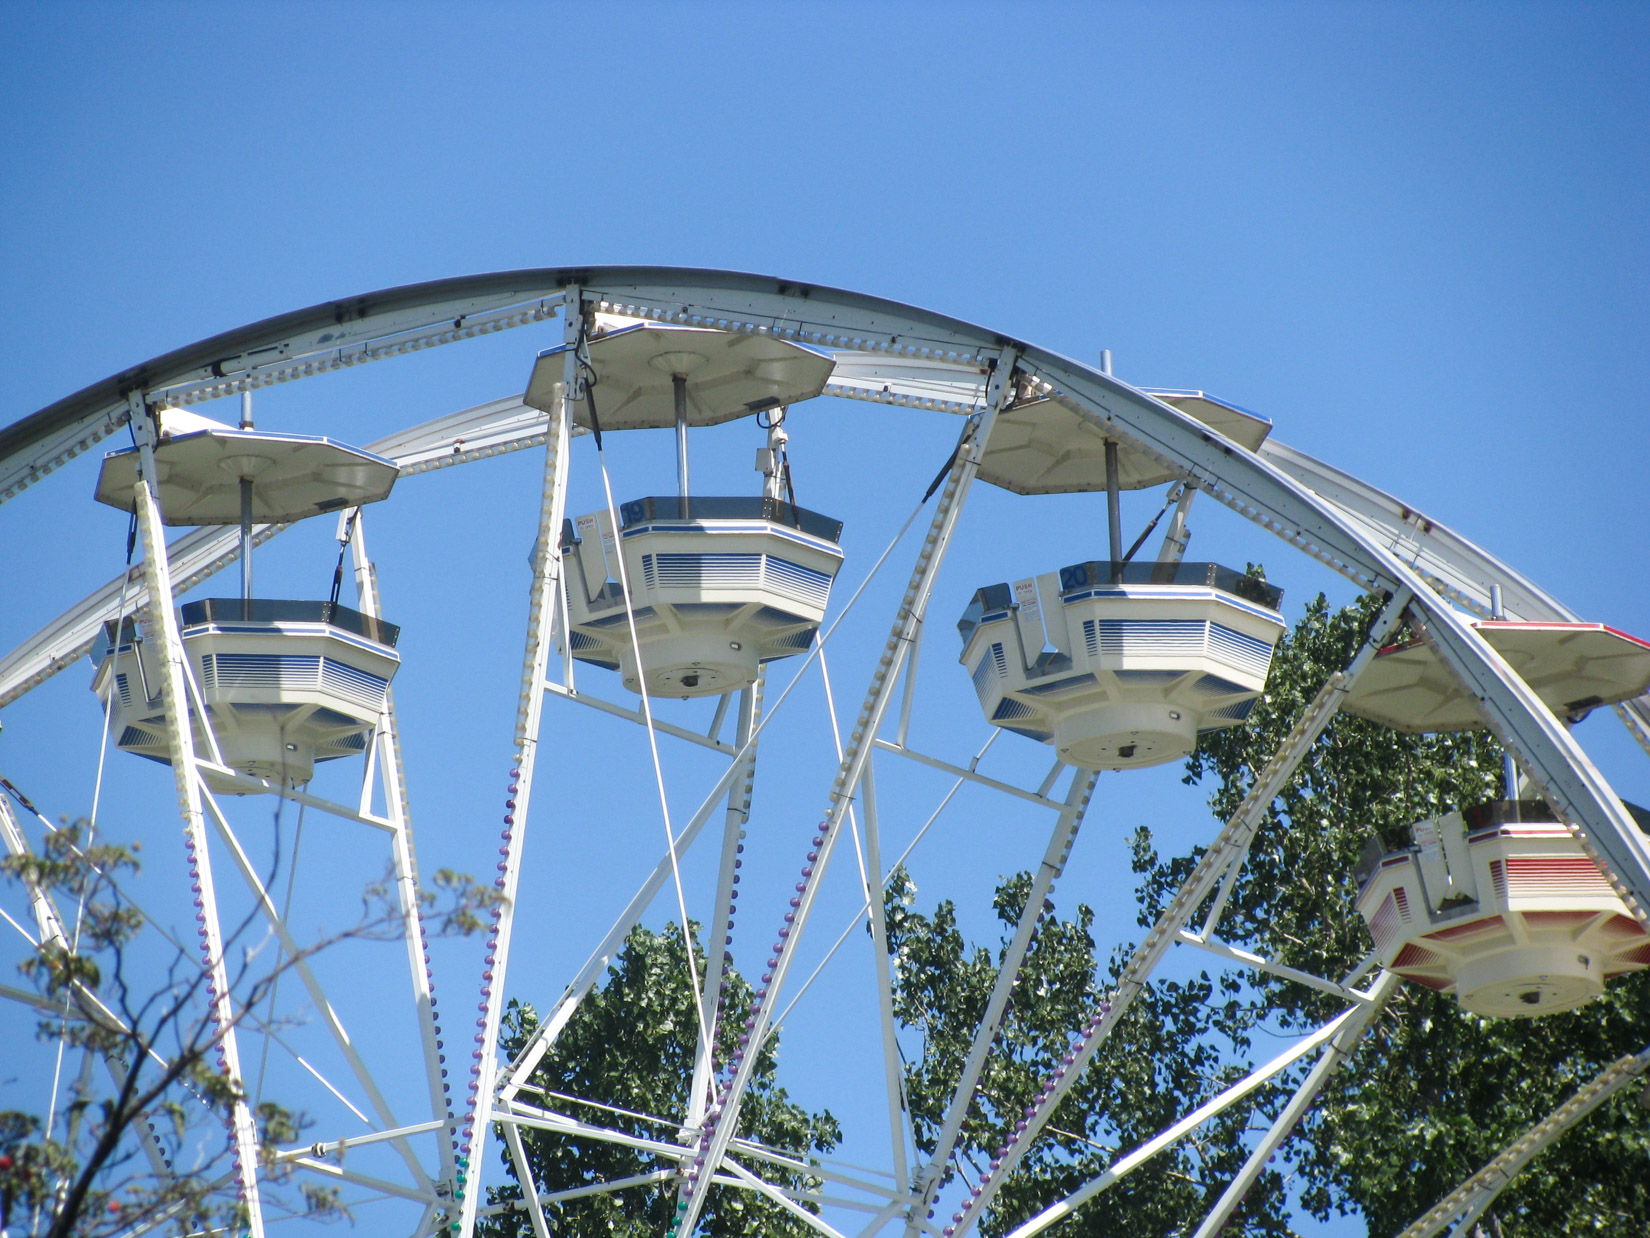 Ferris Wheel In Front of Tree